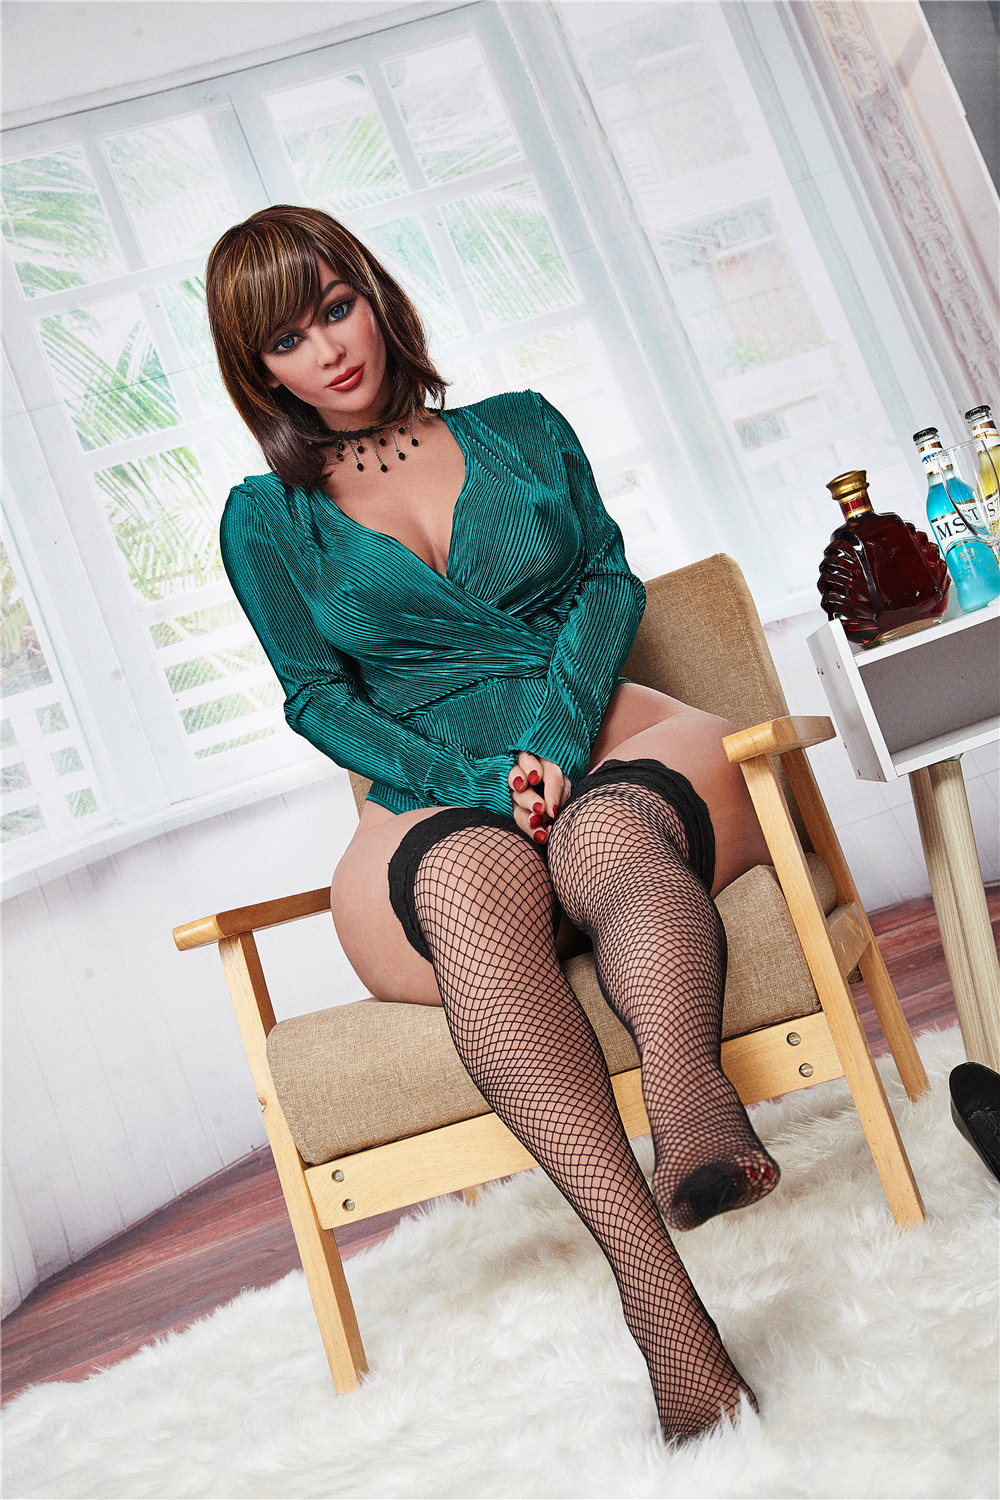 156cm 203#  Real Sex Dolls For Man Size Of Life Full TPE With Metal Skeleton Lifelike American Perfectl Body Sex Doll